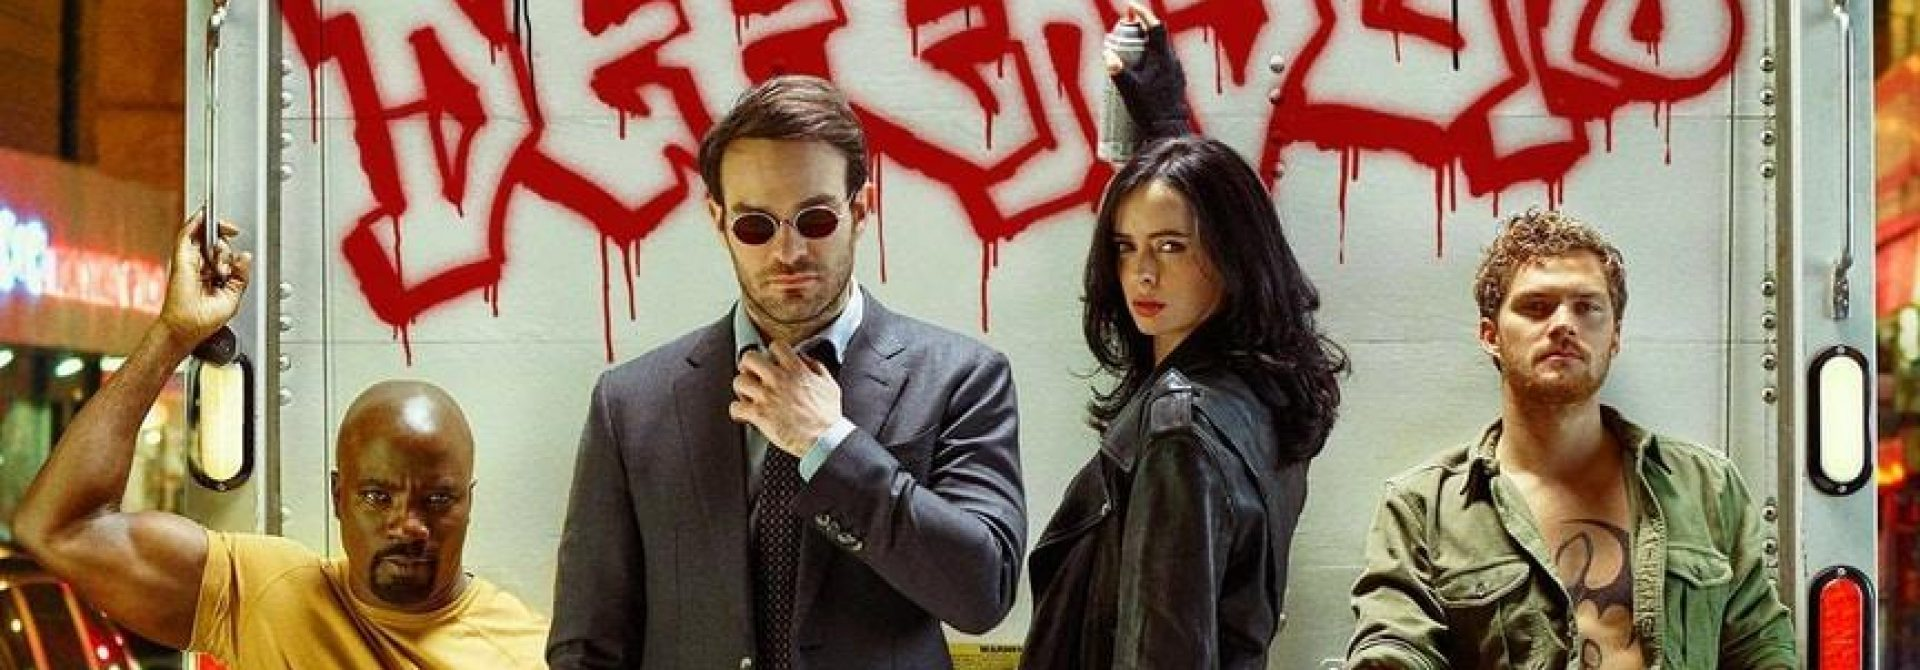 Daredevil, Ironfist and Jessica Jones will be joining MCU!